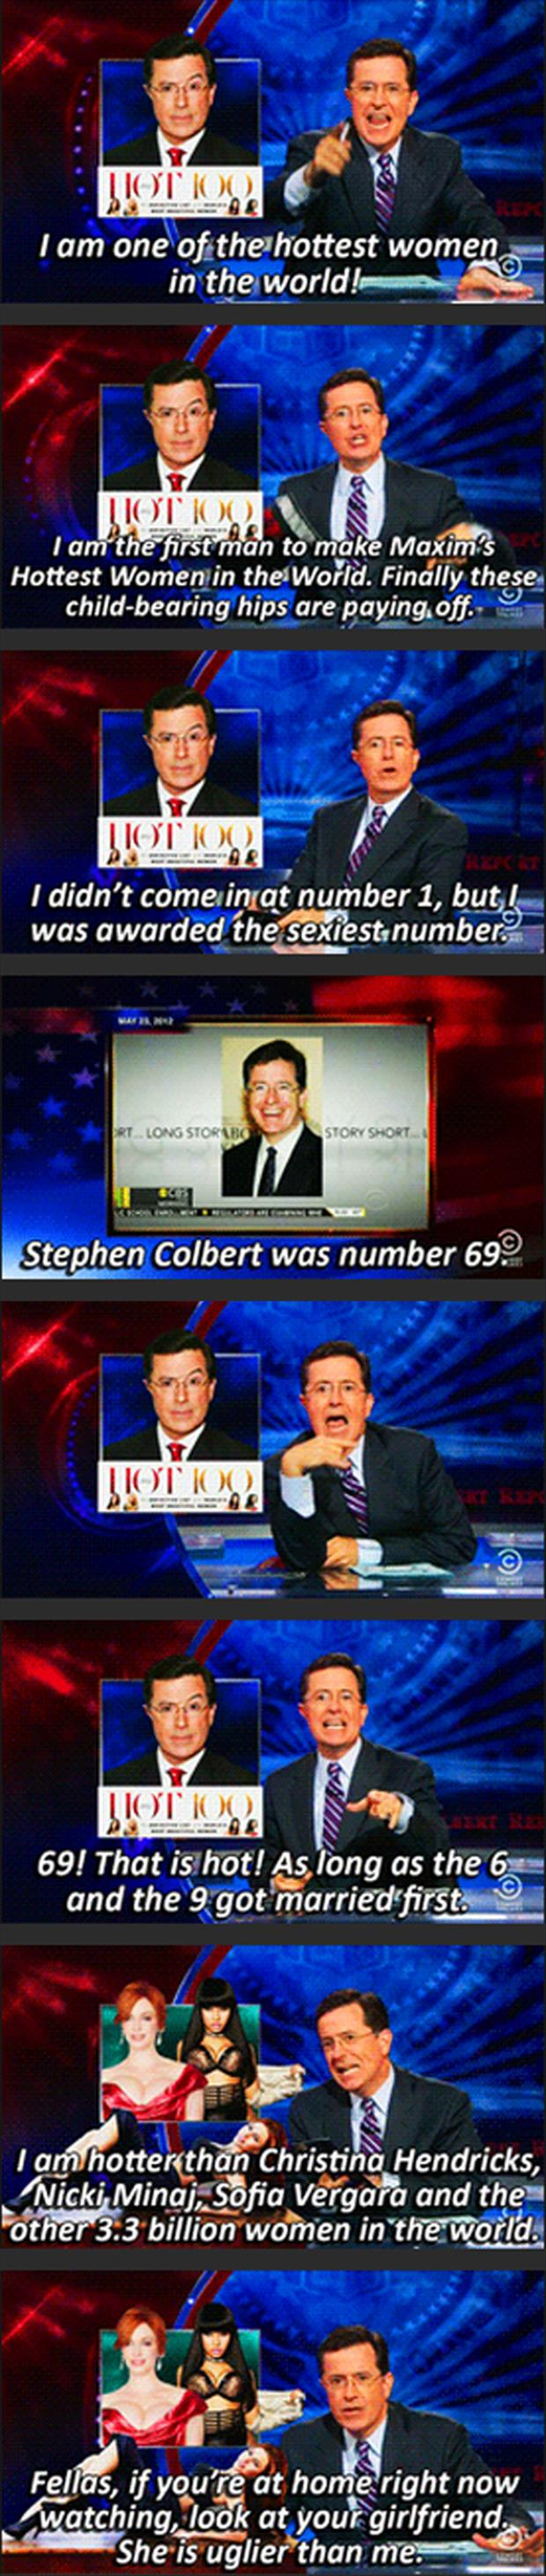 stephen colbert is sexiest woman